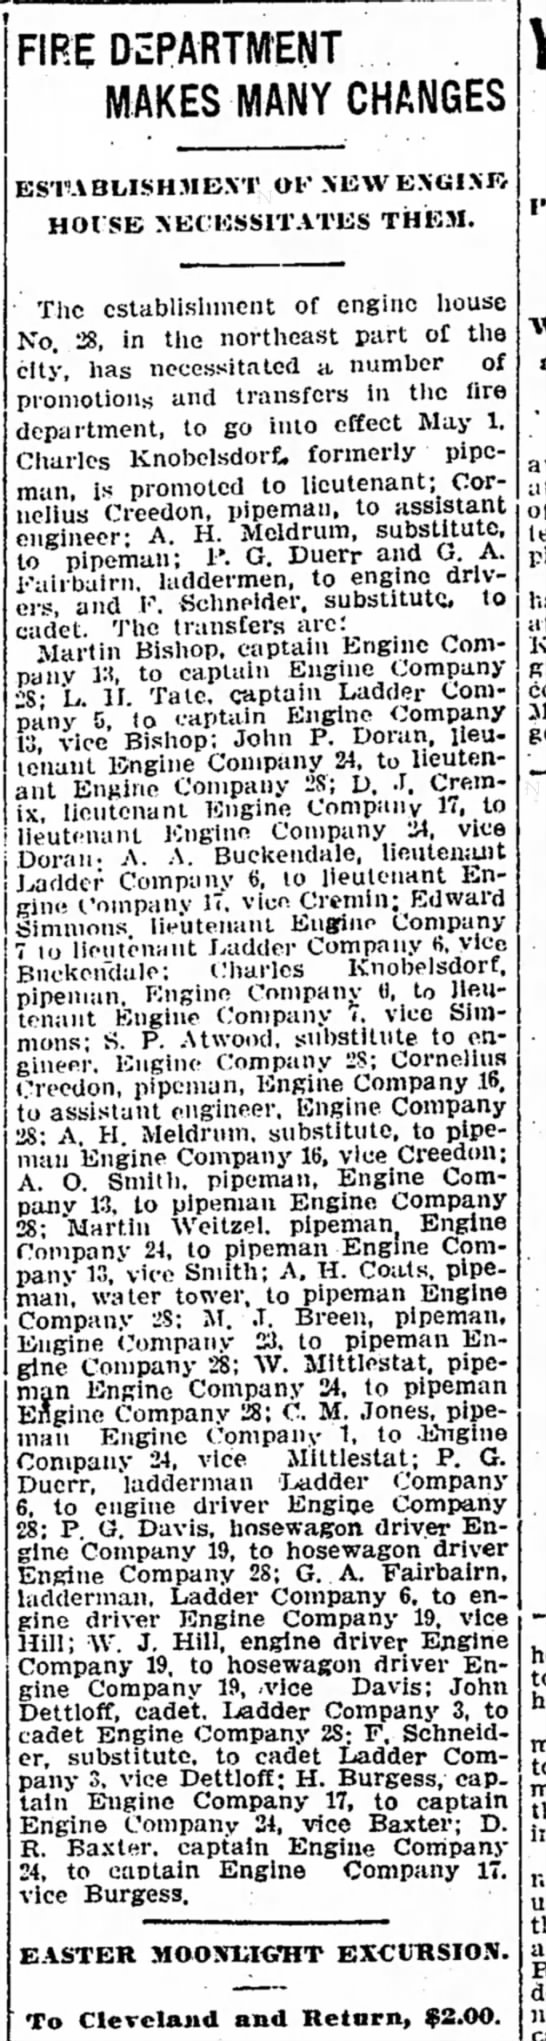 Detroit Free Press April 18, 1905 - FIRE DEPARTMENT MAKES MANY CHANGES...